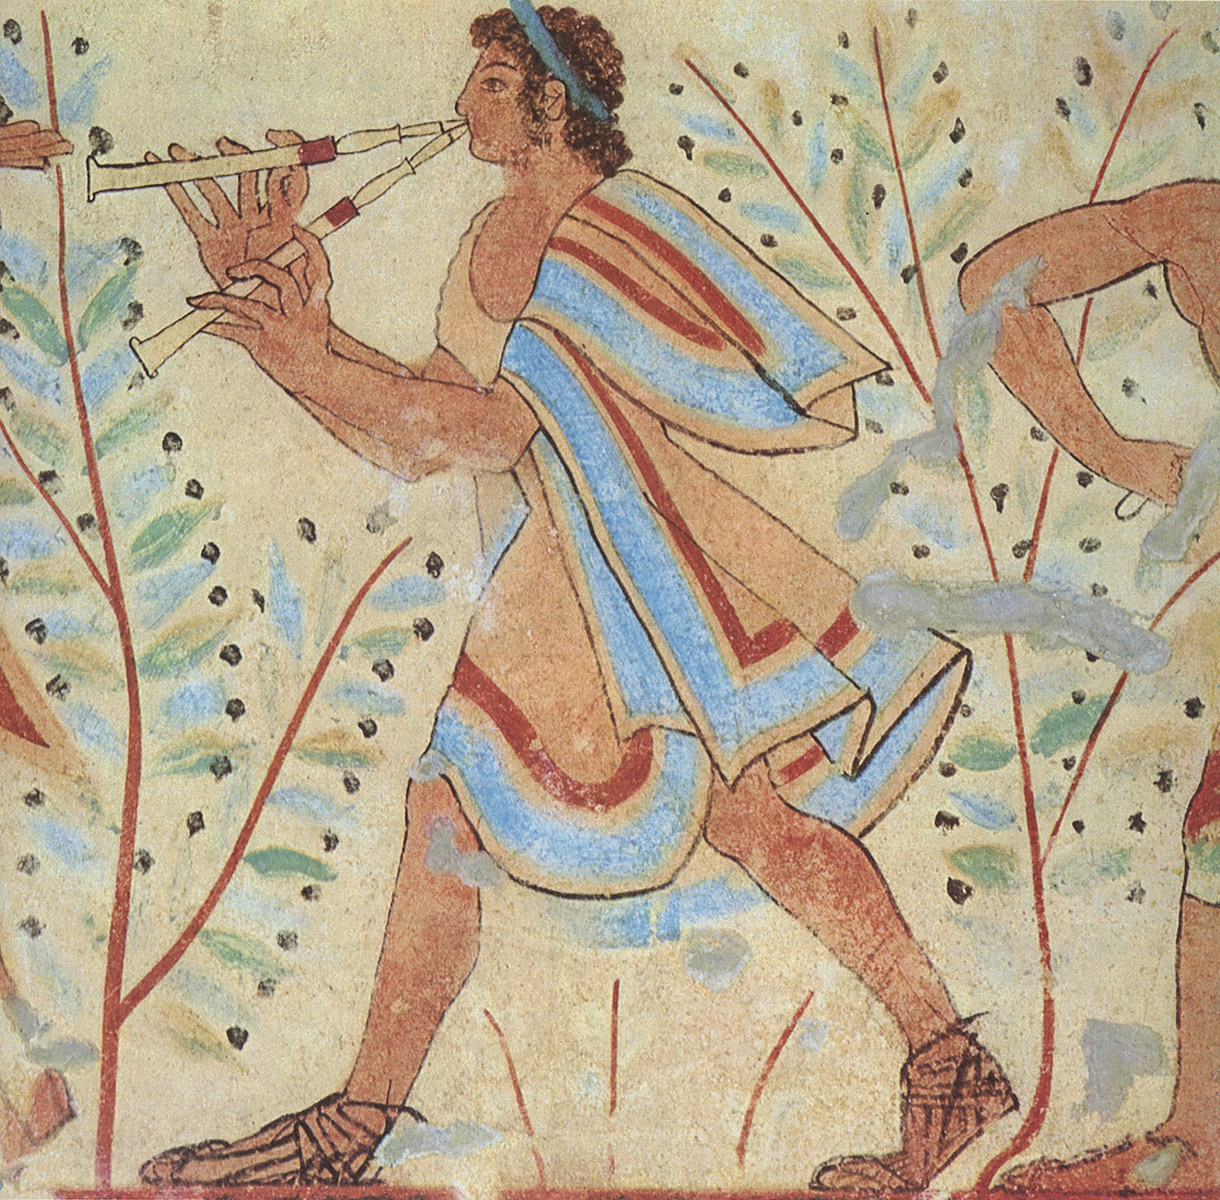 Aulos player. 5th century BCE. Tarquinia, Tomb of the Leopards